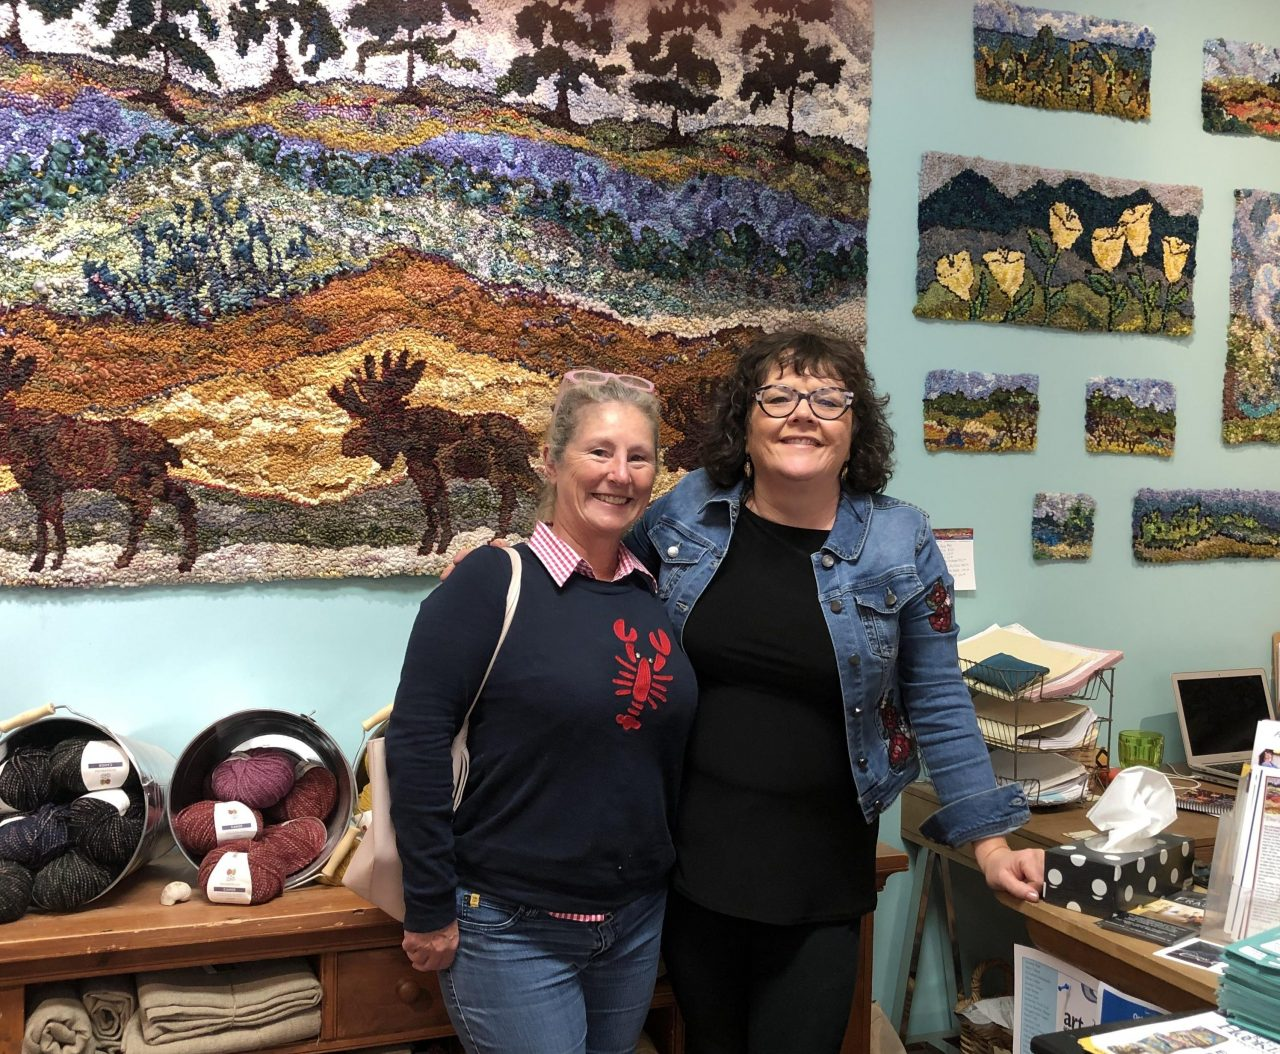 Yvonne Iten-Scott with Deanne Fitzpatrick standing in front of a wall of hooked art in Deanne's studio.